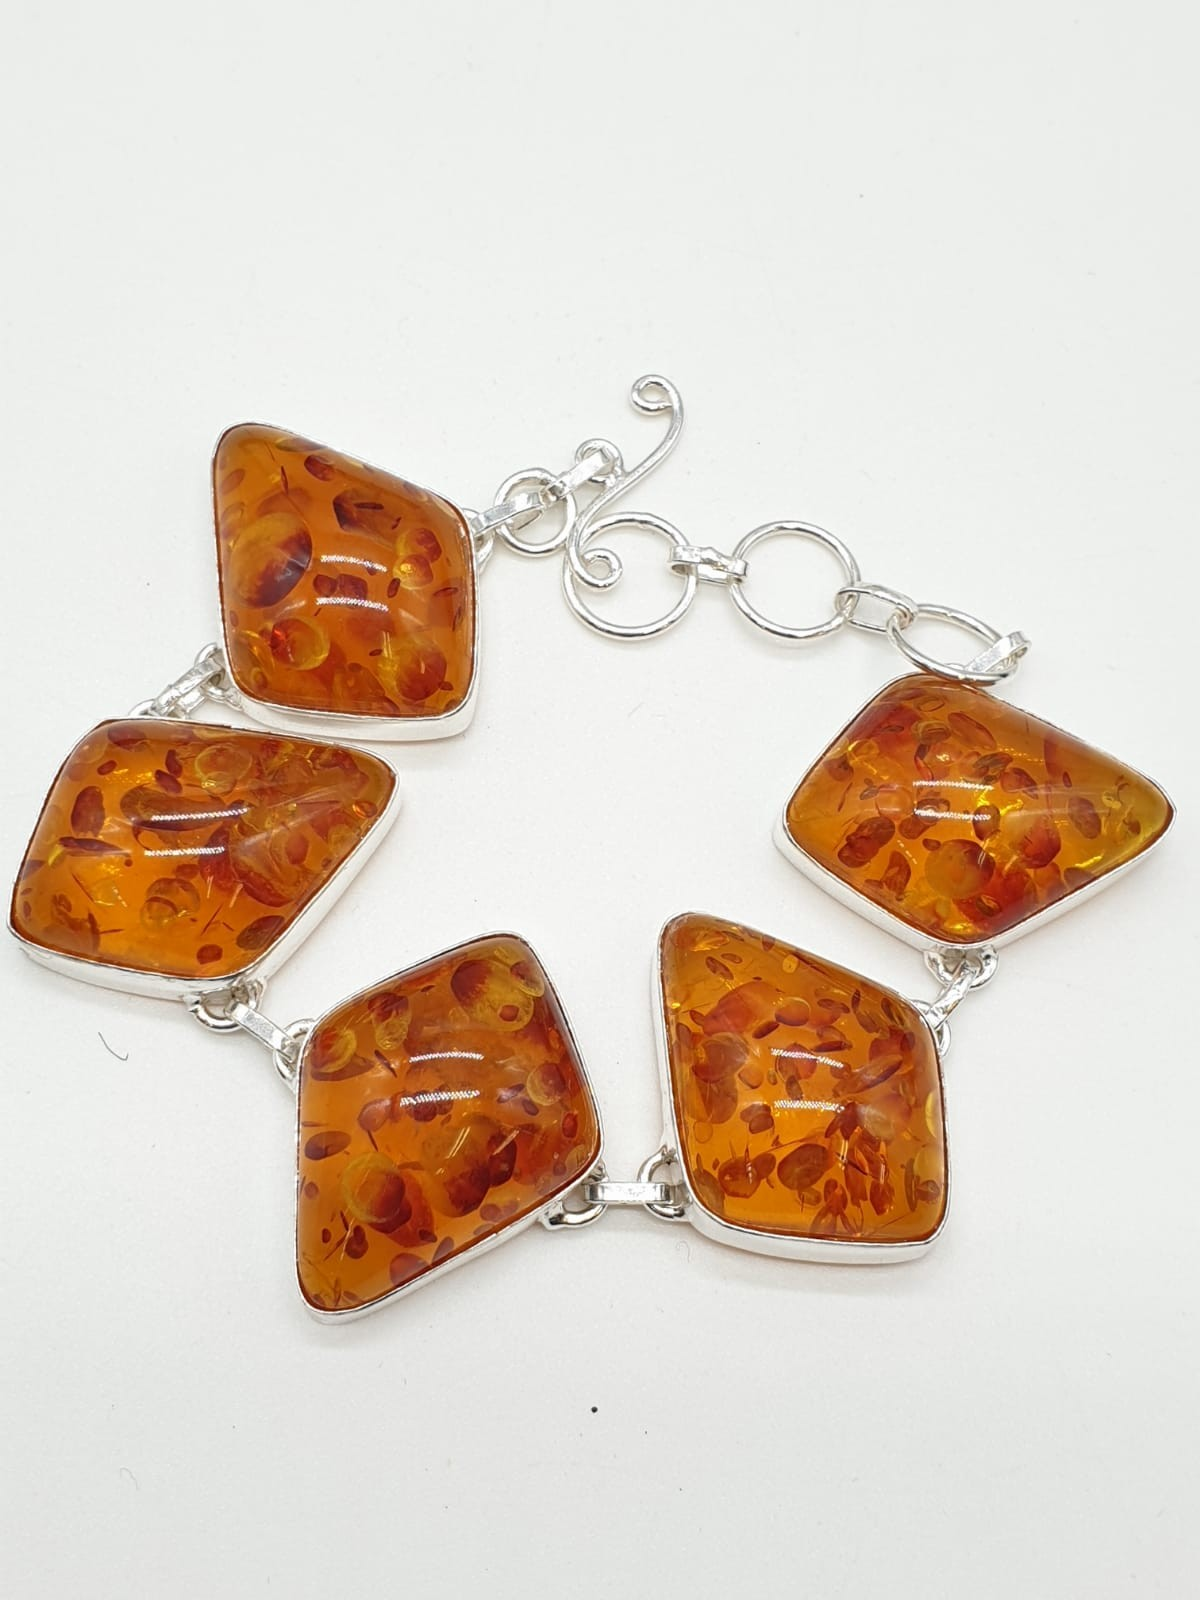 An Art Deco amber style necklace and bracelet set in a presentation box. Necklace length: 52cm. - Image 3 of 5